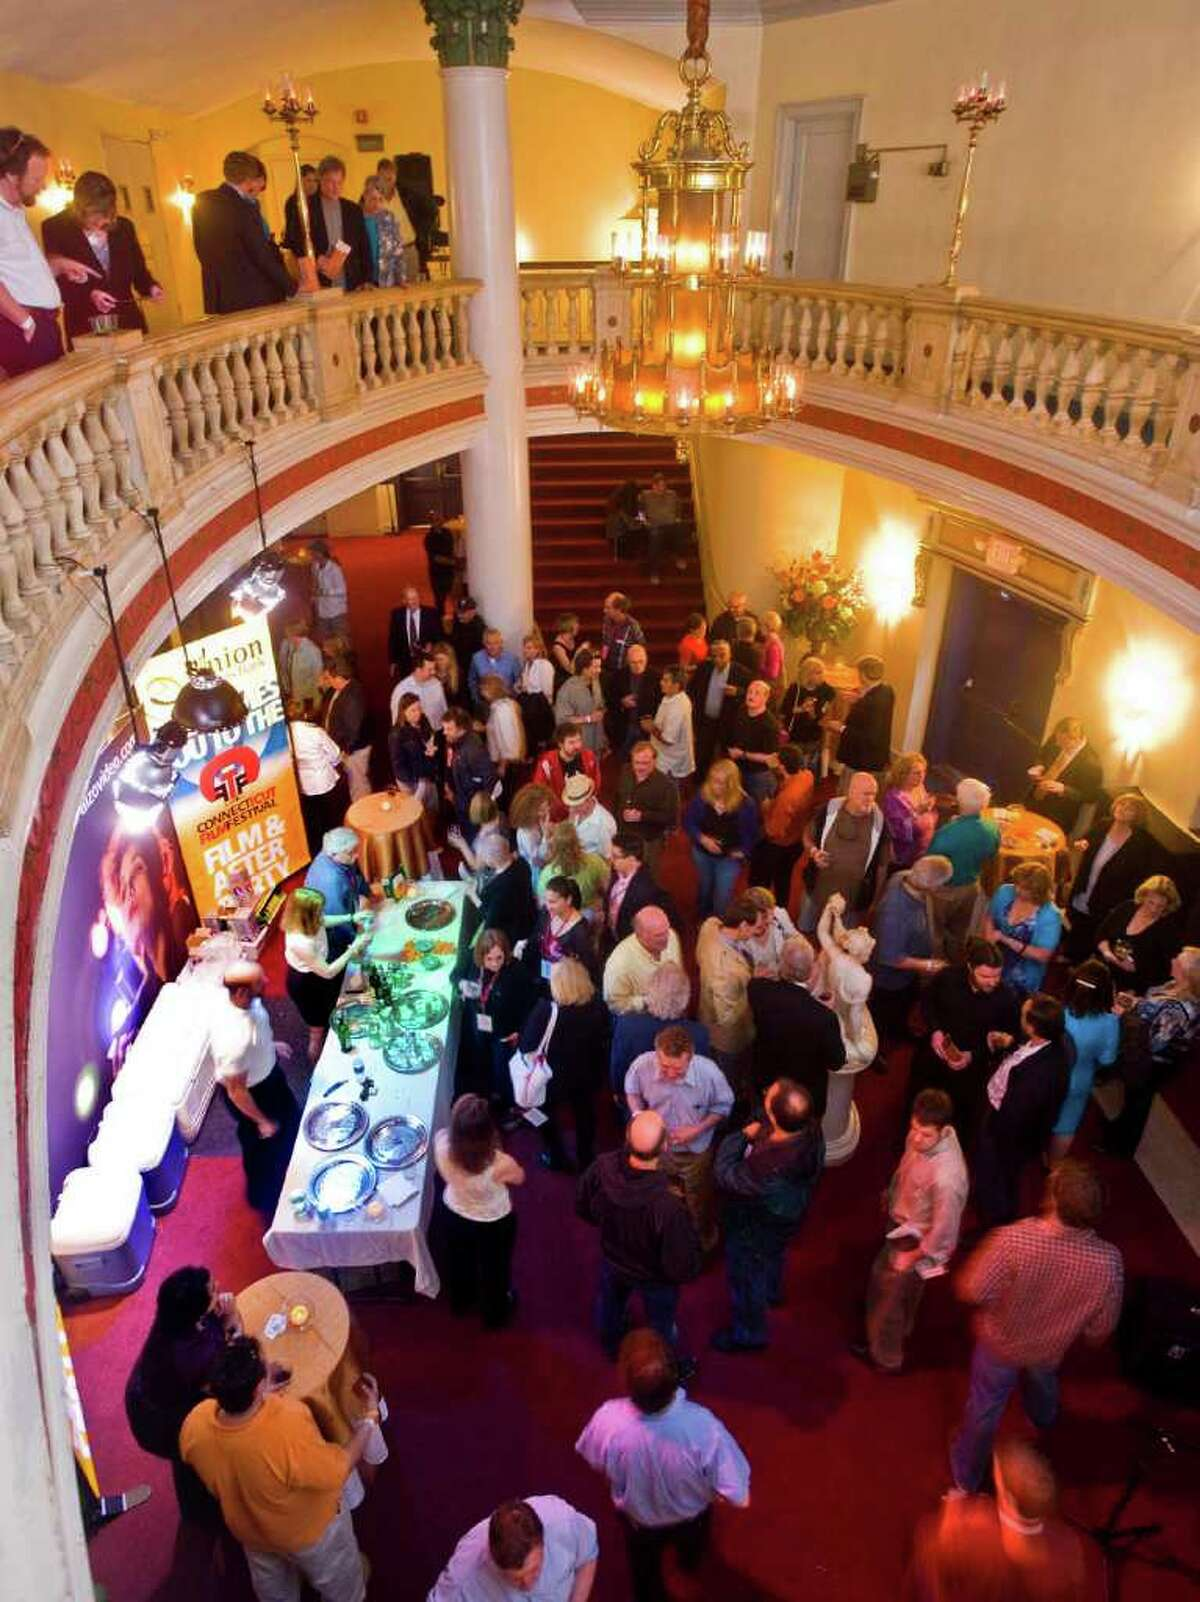 Folks gather in the lobby of the Palace Theater in Danbury prior to the start of the Connecticut Film Festival's showing of the documentary